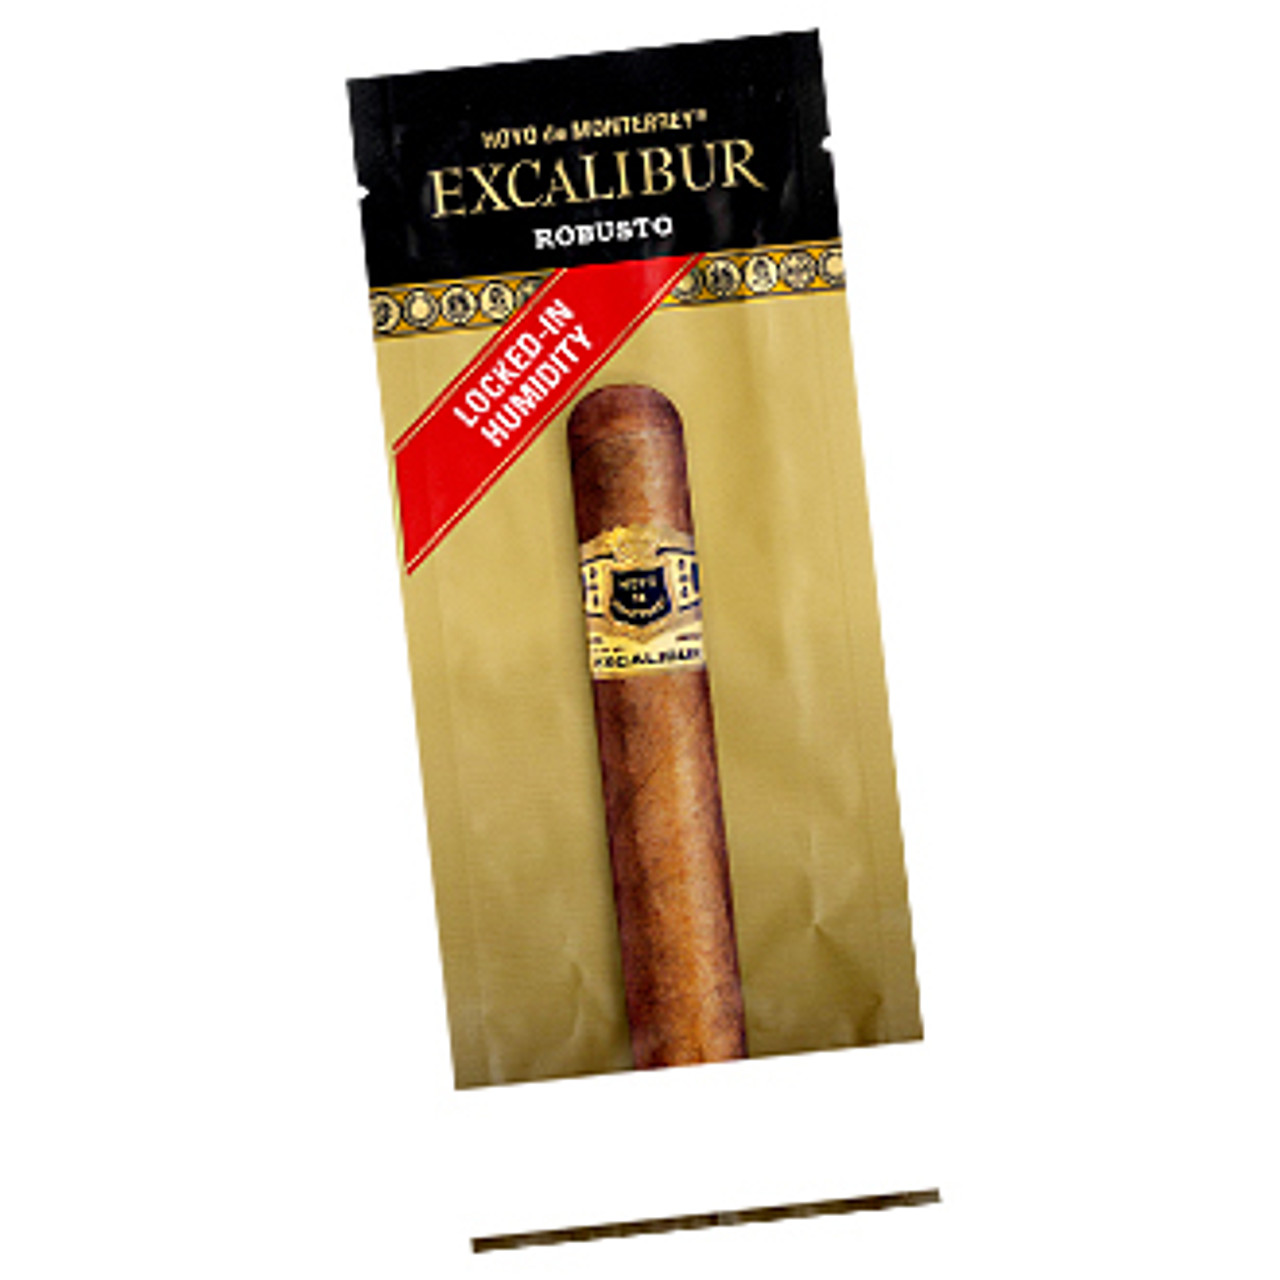 Excalibur Robusto Fresh Pack Cigars - 5.5 x 50 (Pack of 6)